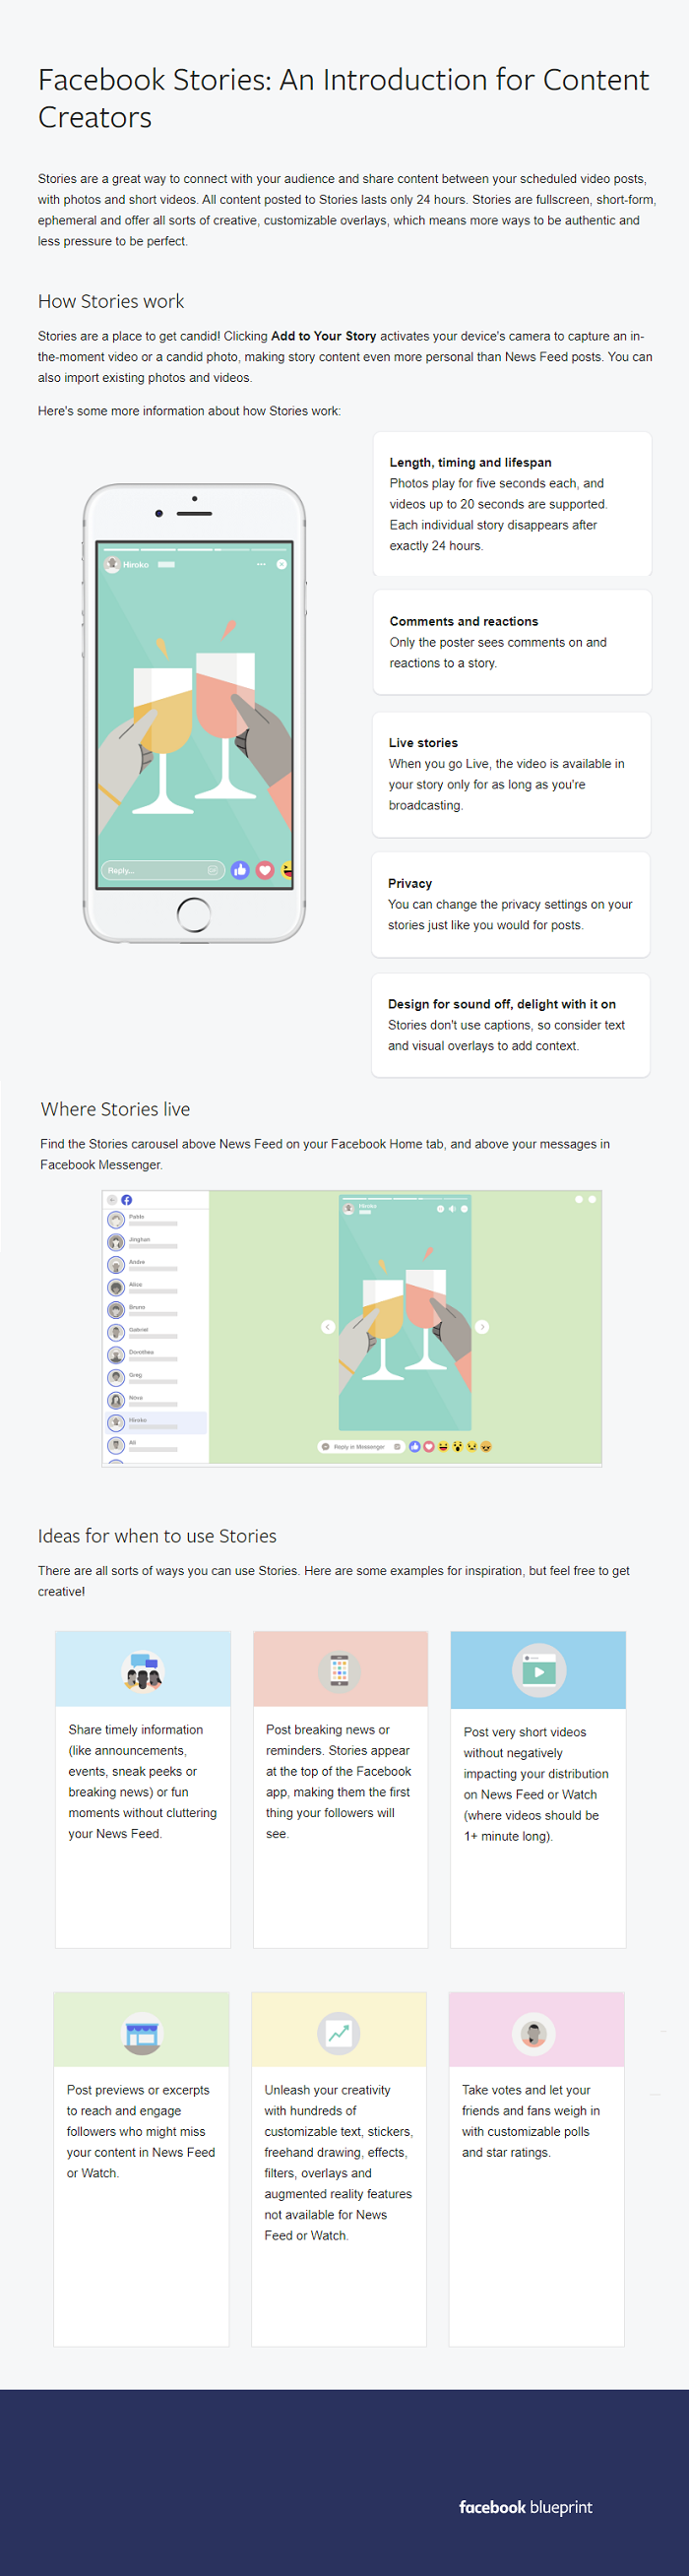 Infographic outlines a range of Facebook Stories tips